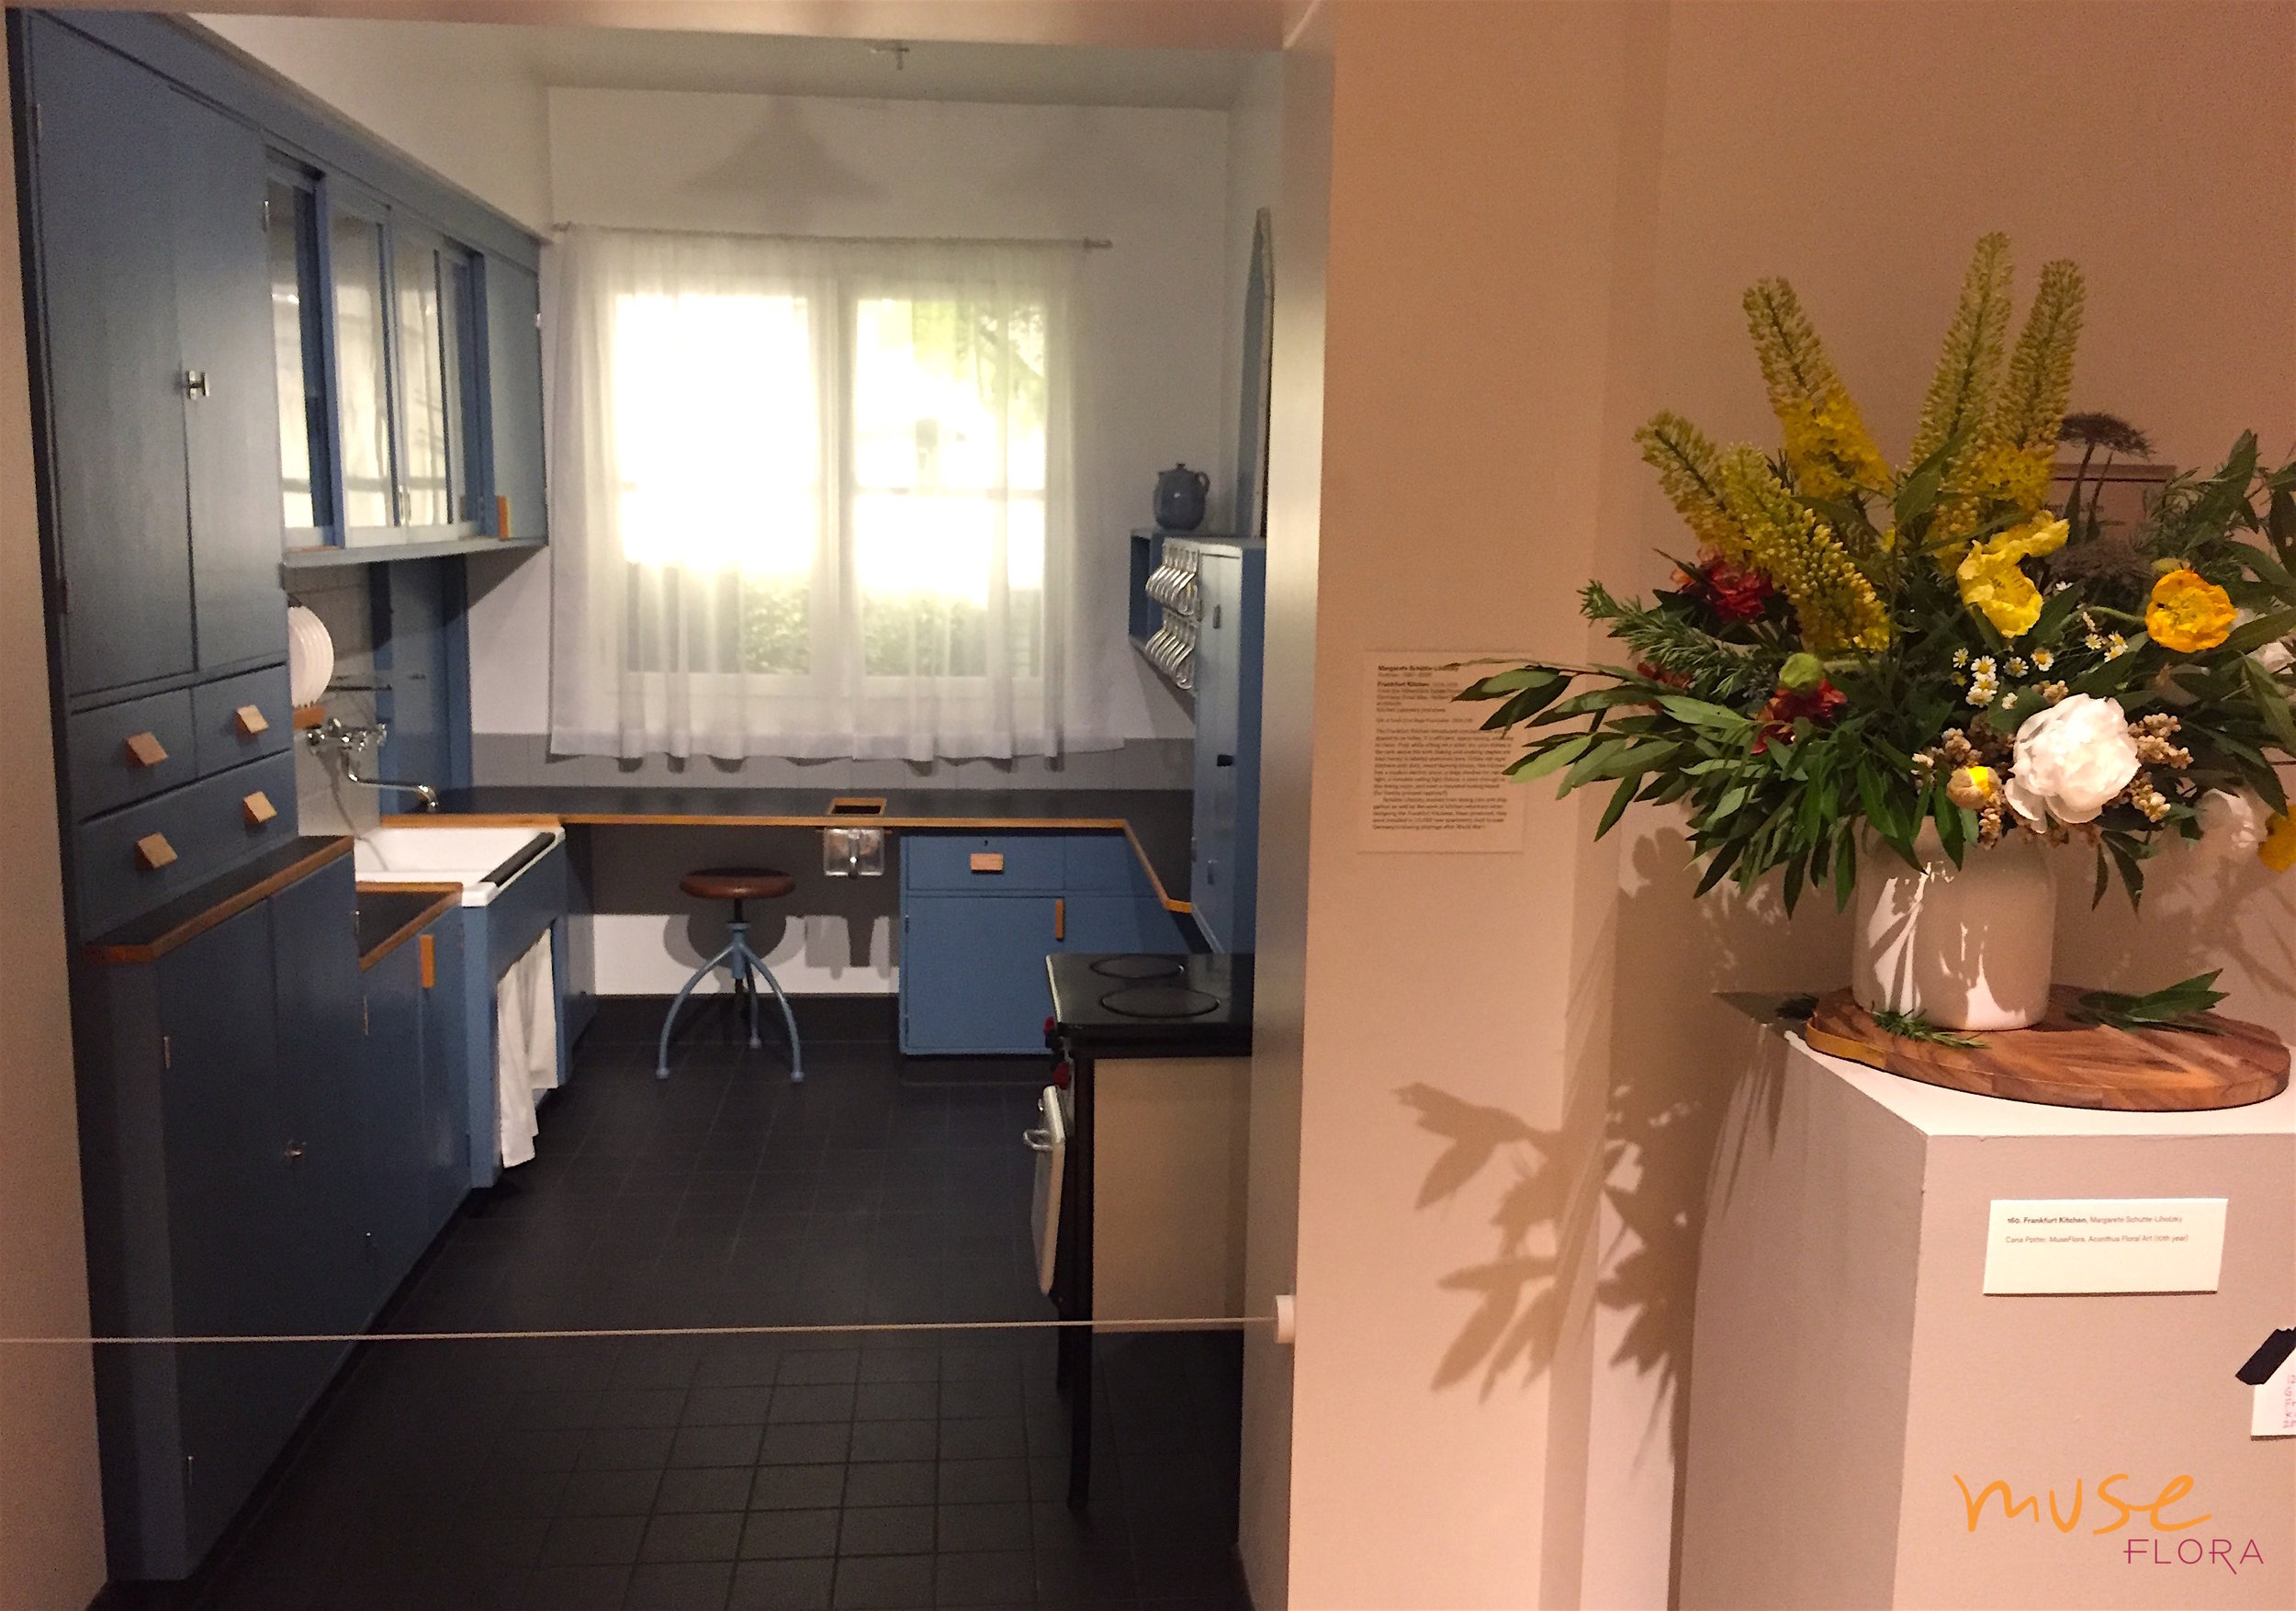 """Cana's floral interpretation of the """"Frankfurt Kitchen"""" during Art in Bloom 2018 is not a literal interpretation. That's what makes floral art so fun! Can you imagine the inhabitant sitting on the stool arranging it at the counter?"""